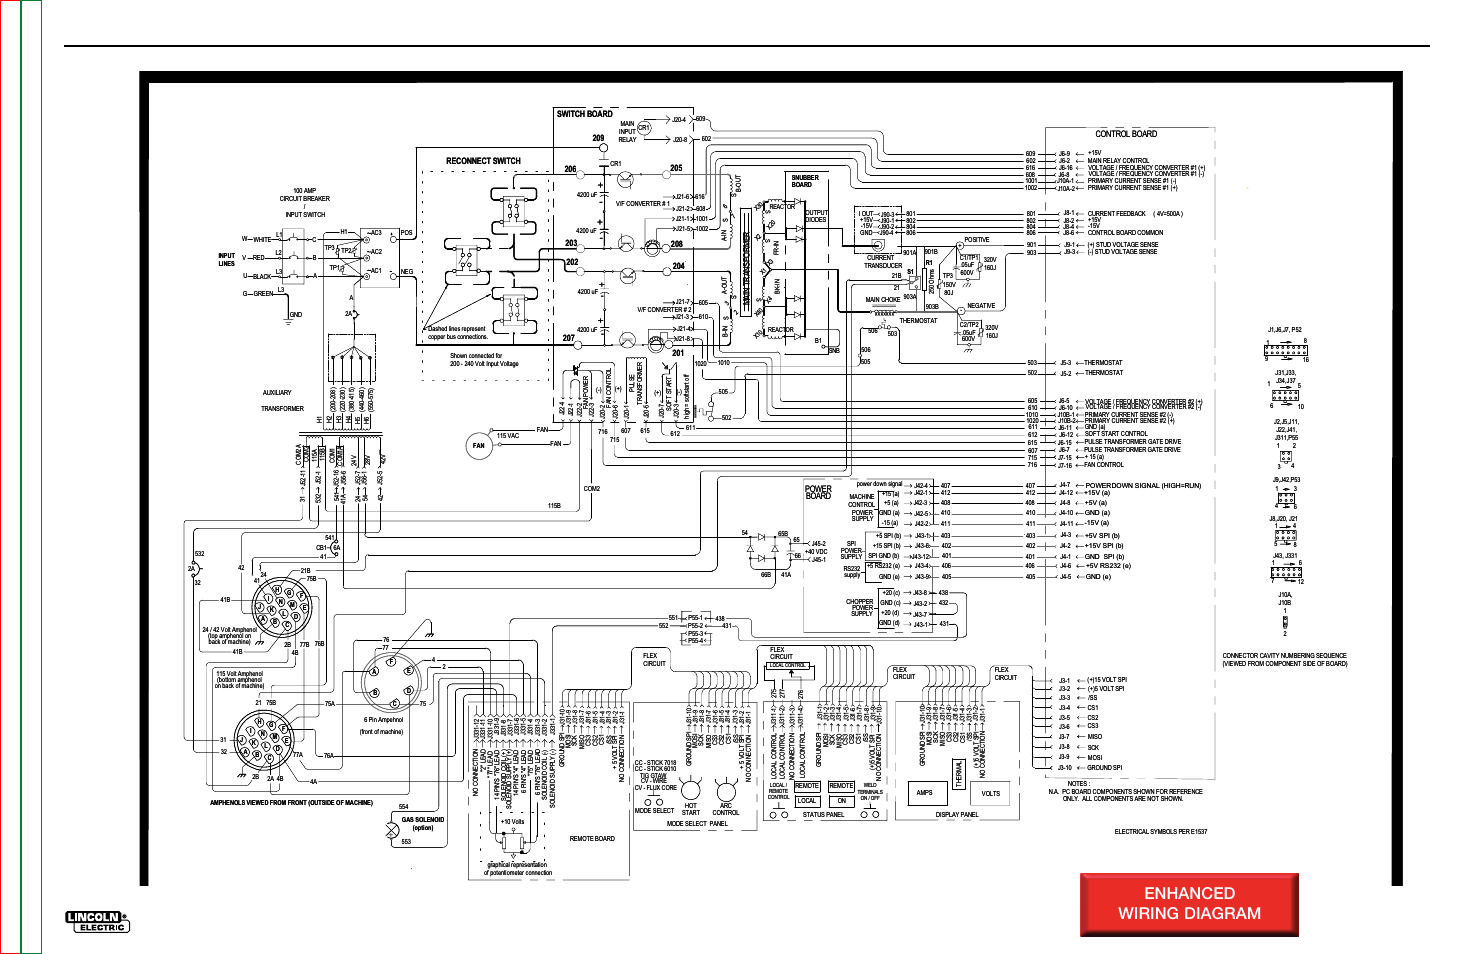 electrical diagrams  enhanced wiring diagram  schematic